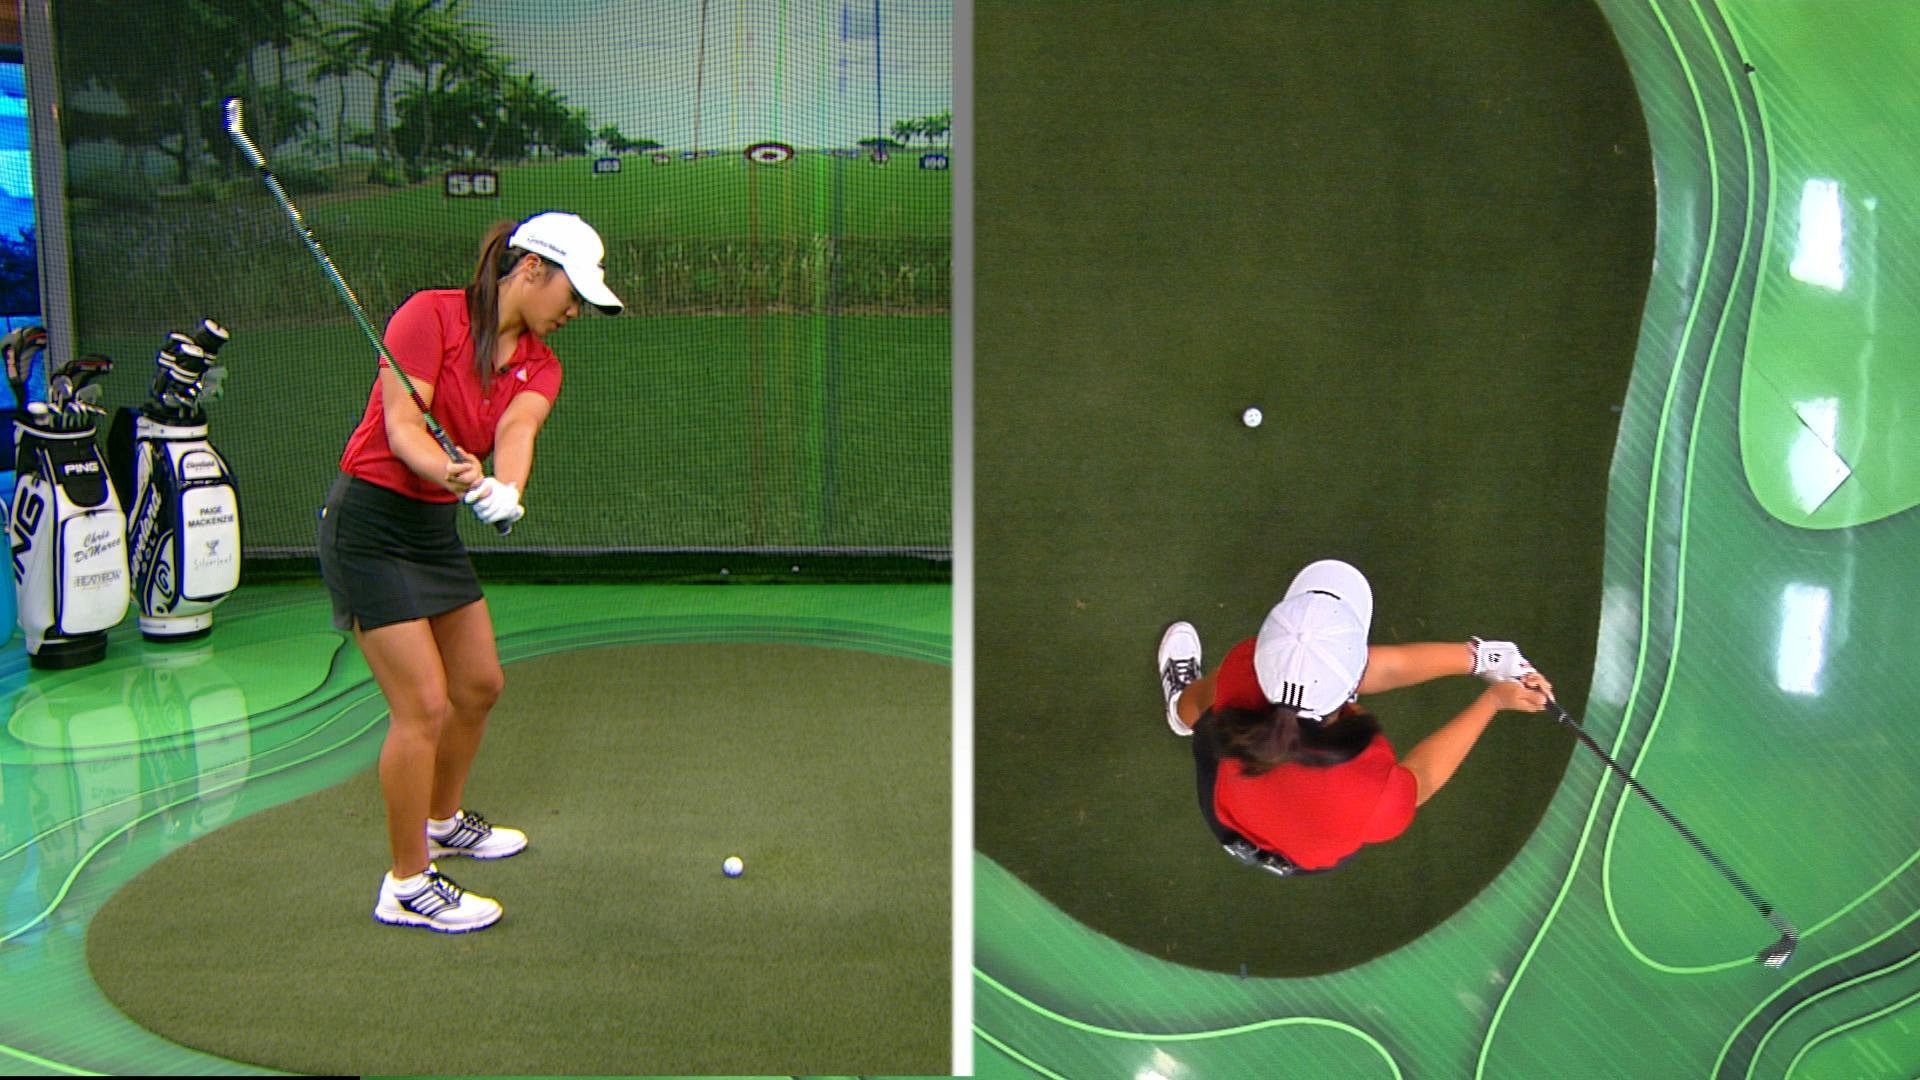 an analysis of golf lesson Game analyzers it's time to embrace real game analysis that used to be reserved for players on the pga tour coupled with scoring, gps capabilities and gaming options, we suggest you add arccos 360 or game golf pro to your game.